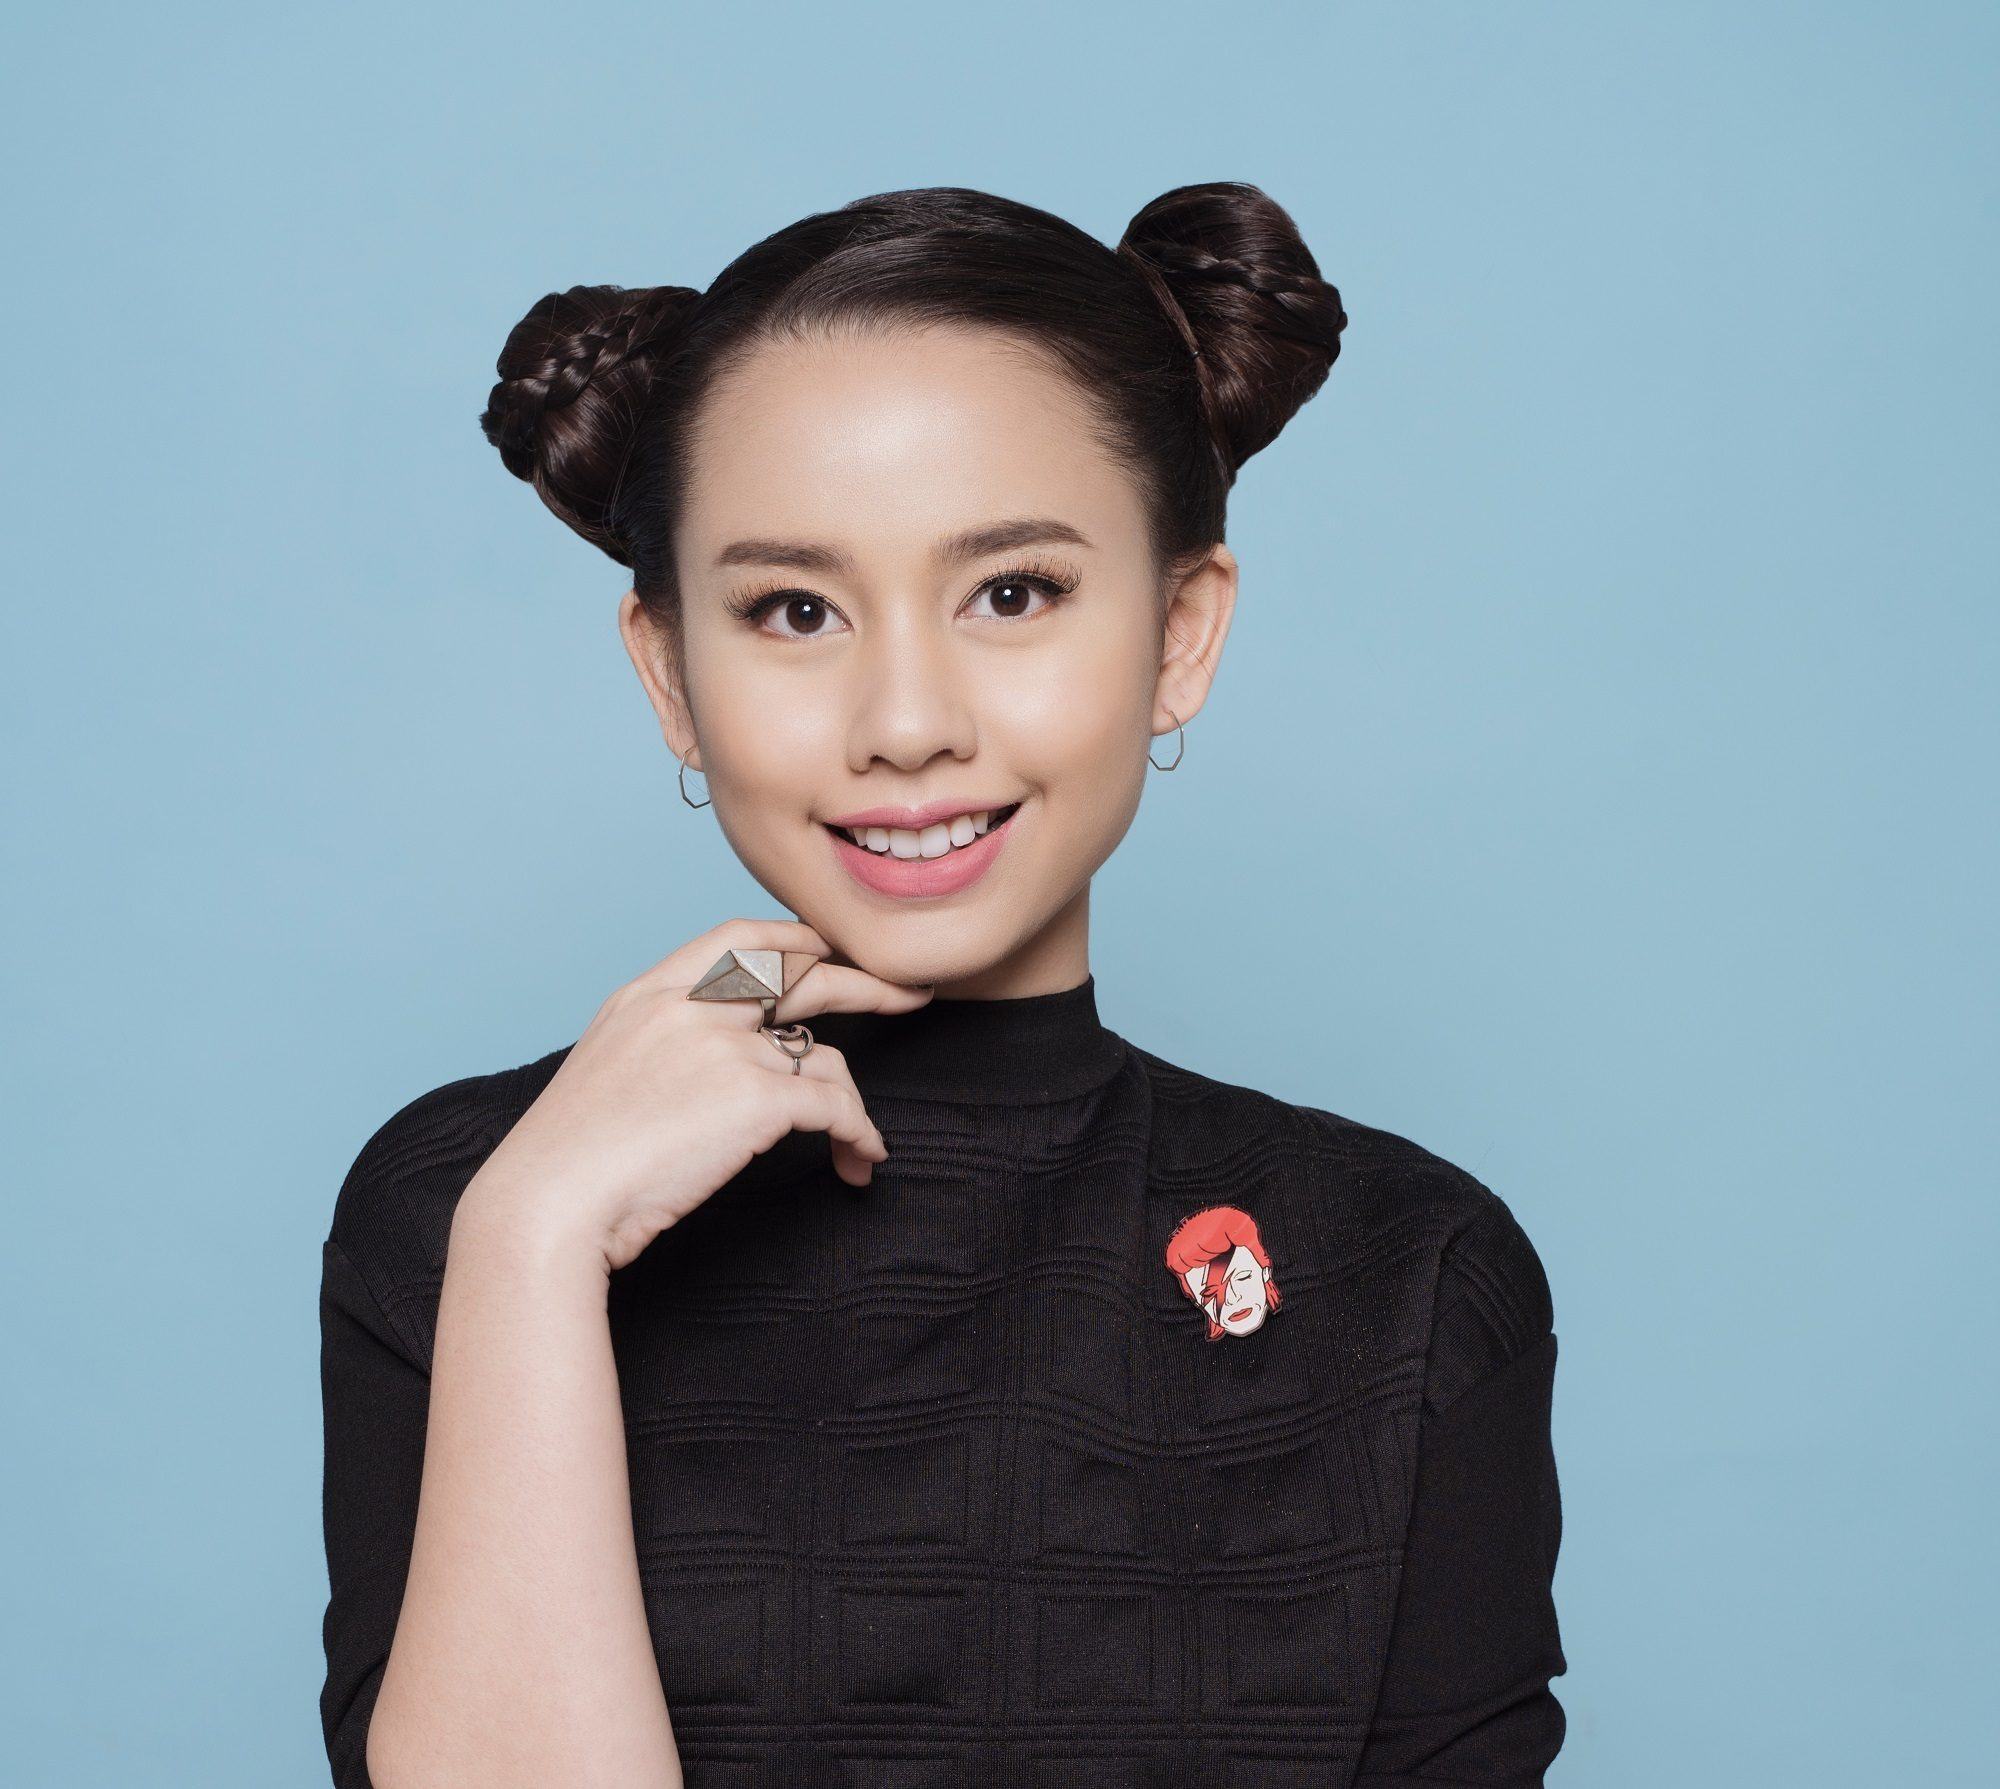 Advent calendar: Closeup shot of Asian girl with black hair in space buns wearing a black shirt